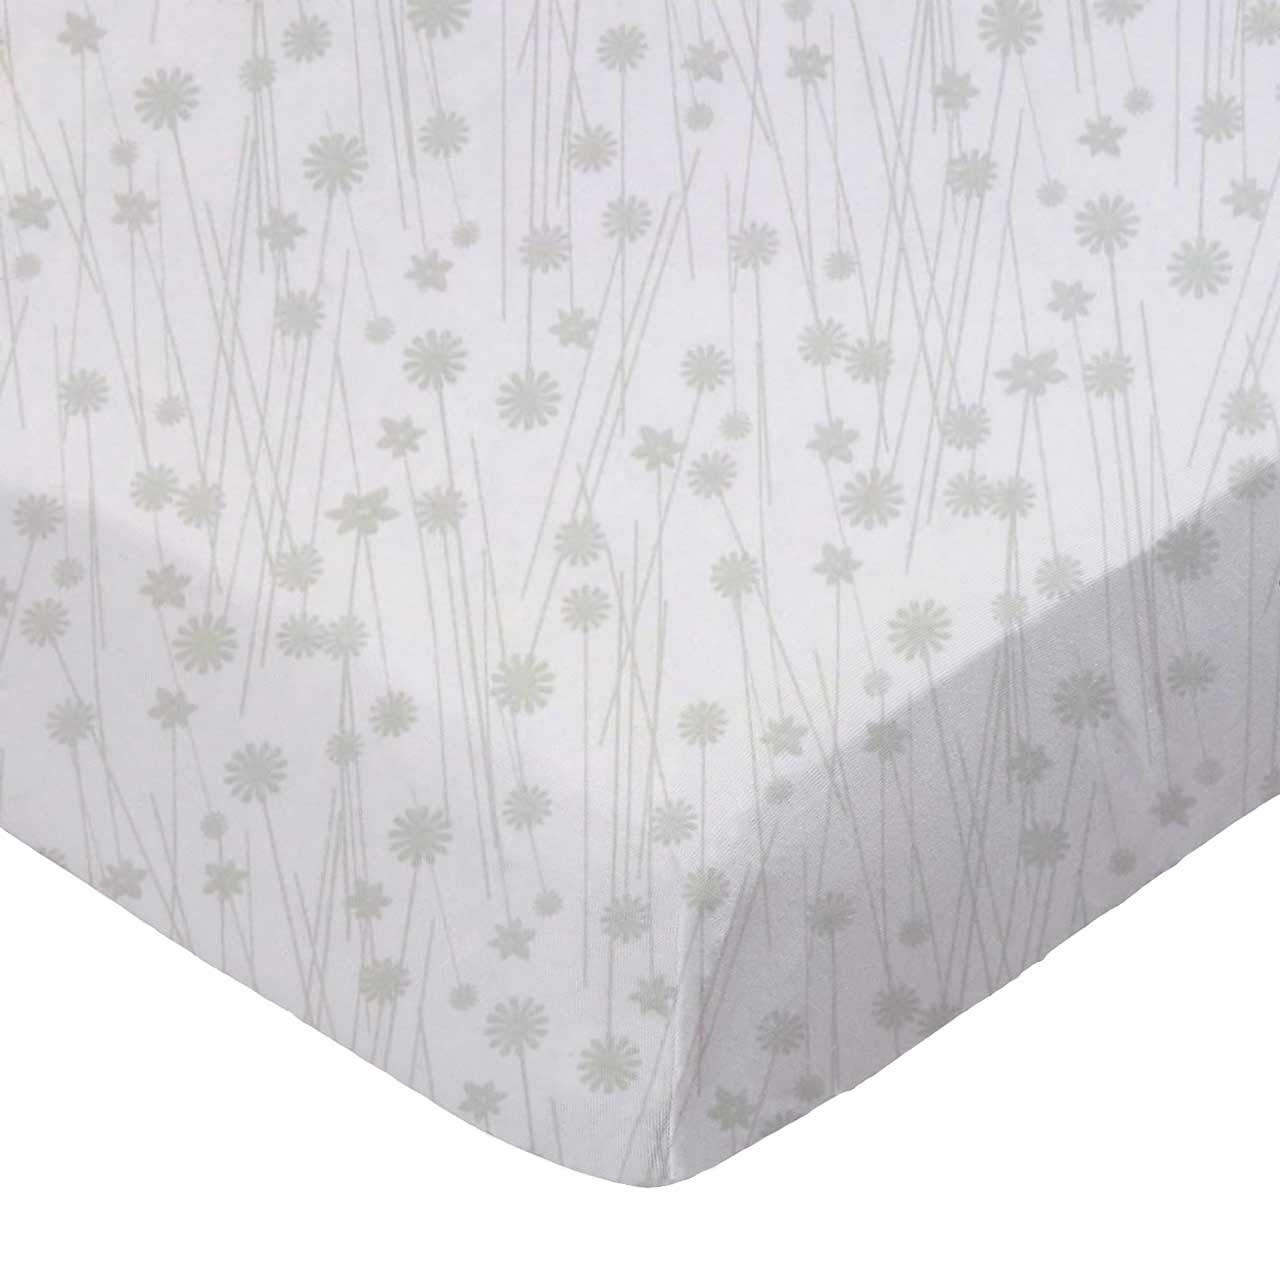 SheetWorld Fitted Basket Sheet - Grey Floral Stems - Made In USA by sheetworld   B010R5KBDS